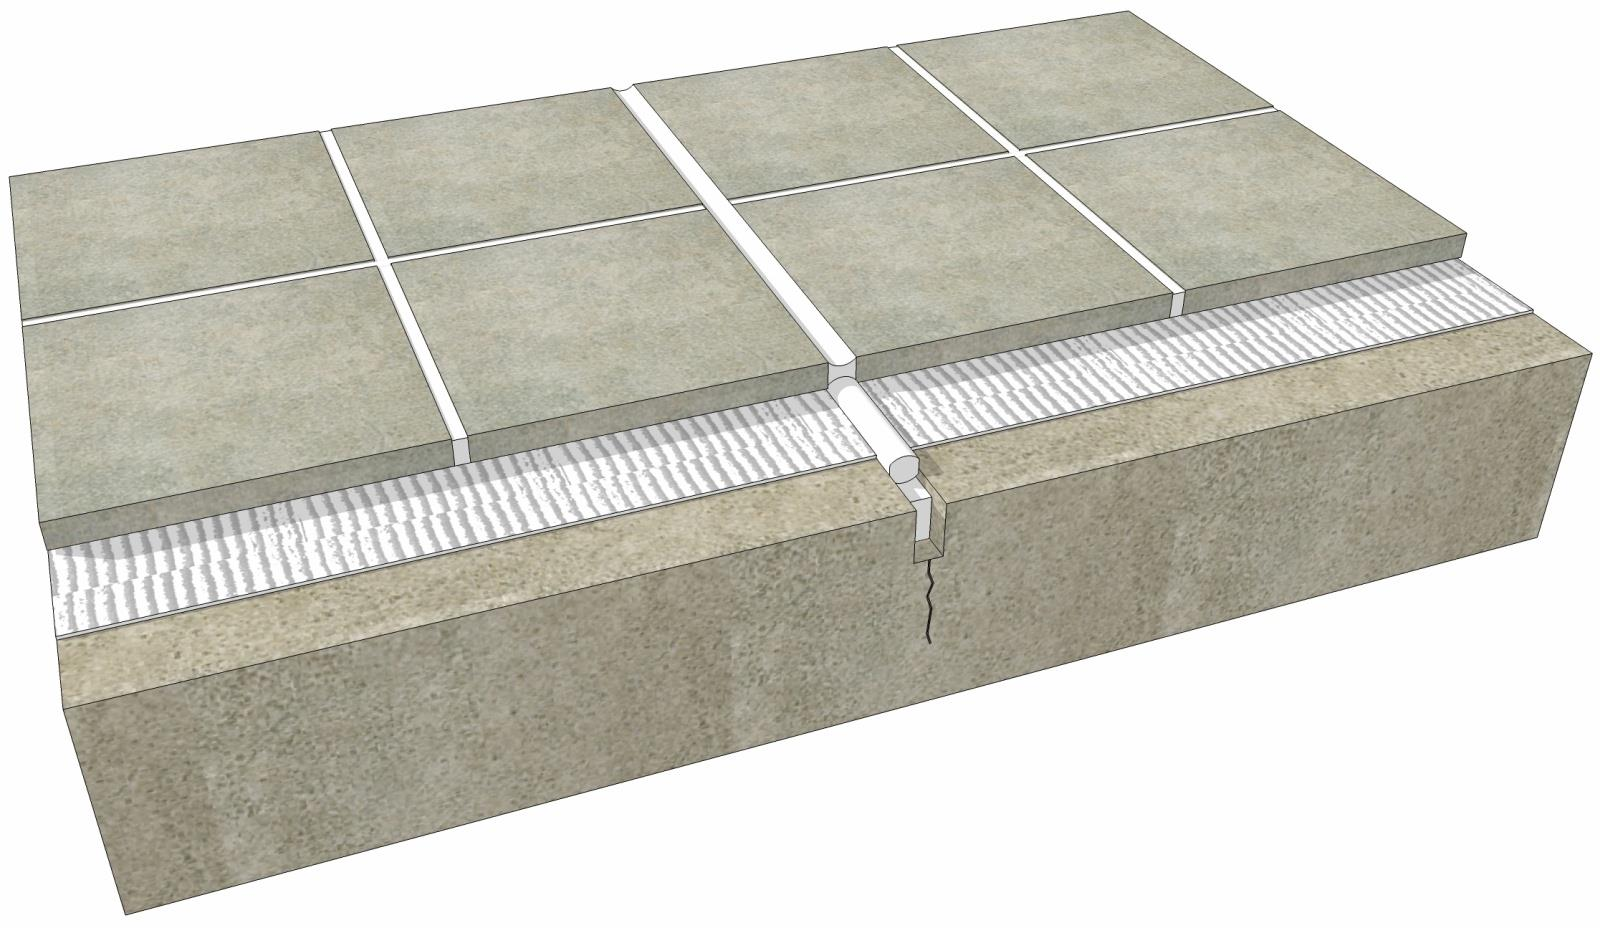 06 130 1302 Floor Tile Expansion Joint Over Concrete